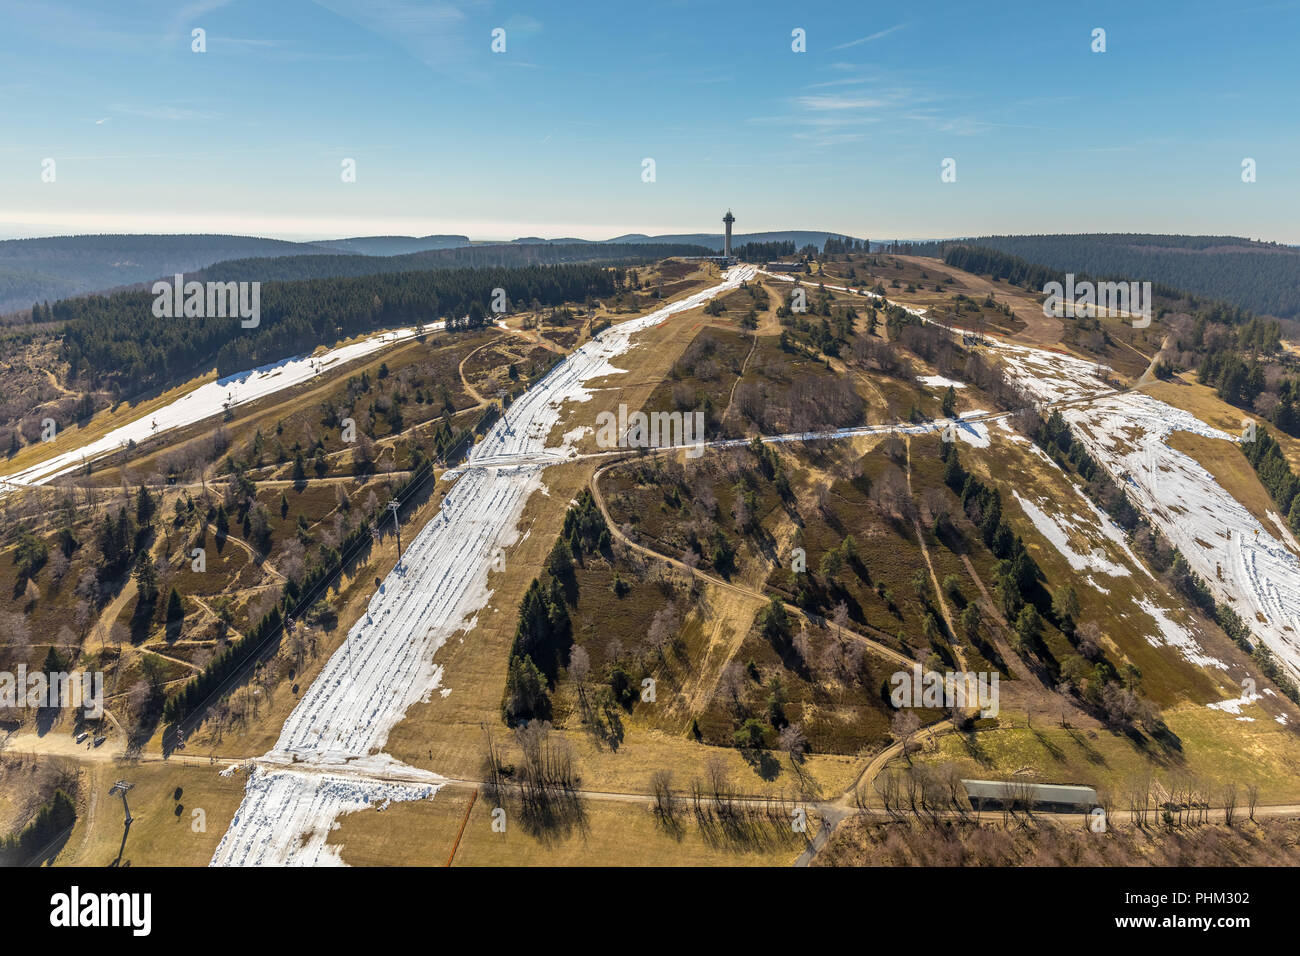 Ettelsberg with snow remnants on the slopes in Willingen in Hesse. Willingen (Upland), Landkreis Waldeck-Frankenberg in Hessen' Hessen, Germany, Willi - Stock Image